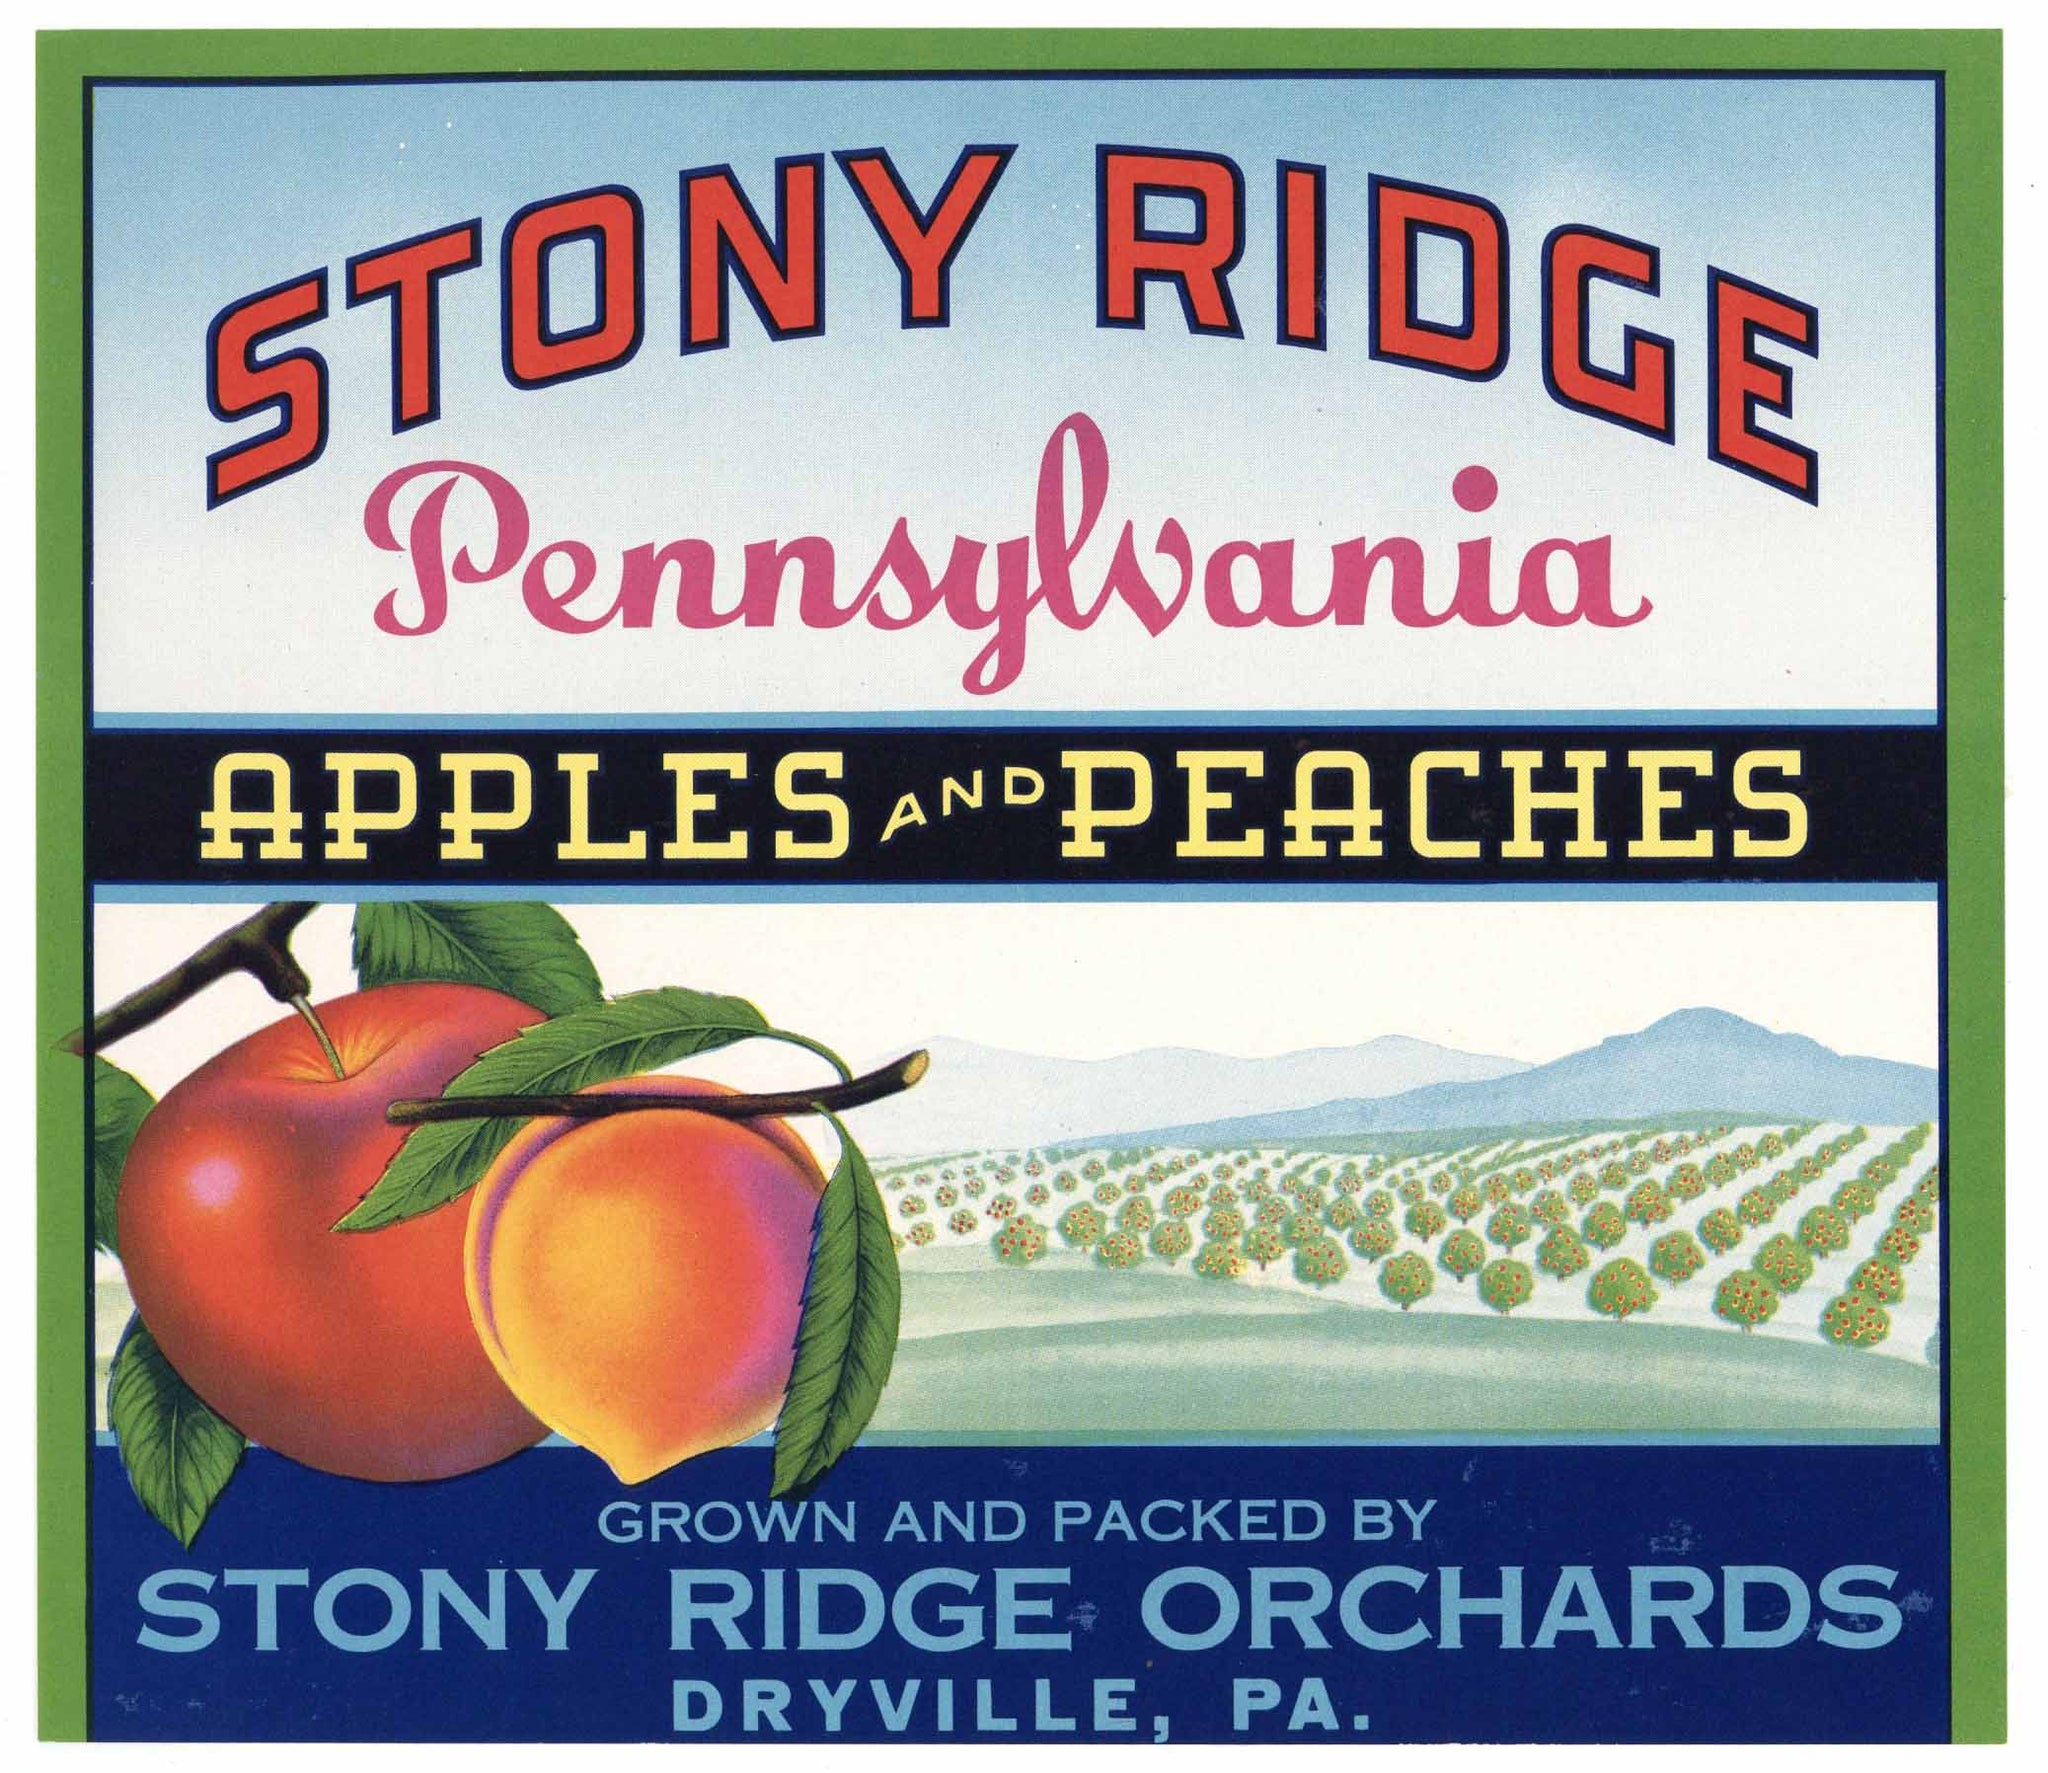 Stony Ridge Brand Vintage Pennsylvania Apple and Peach Crate Label